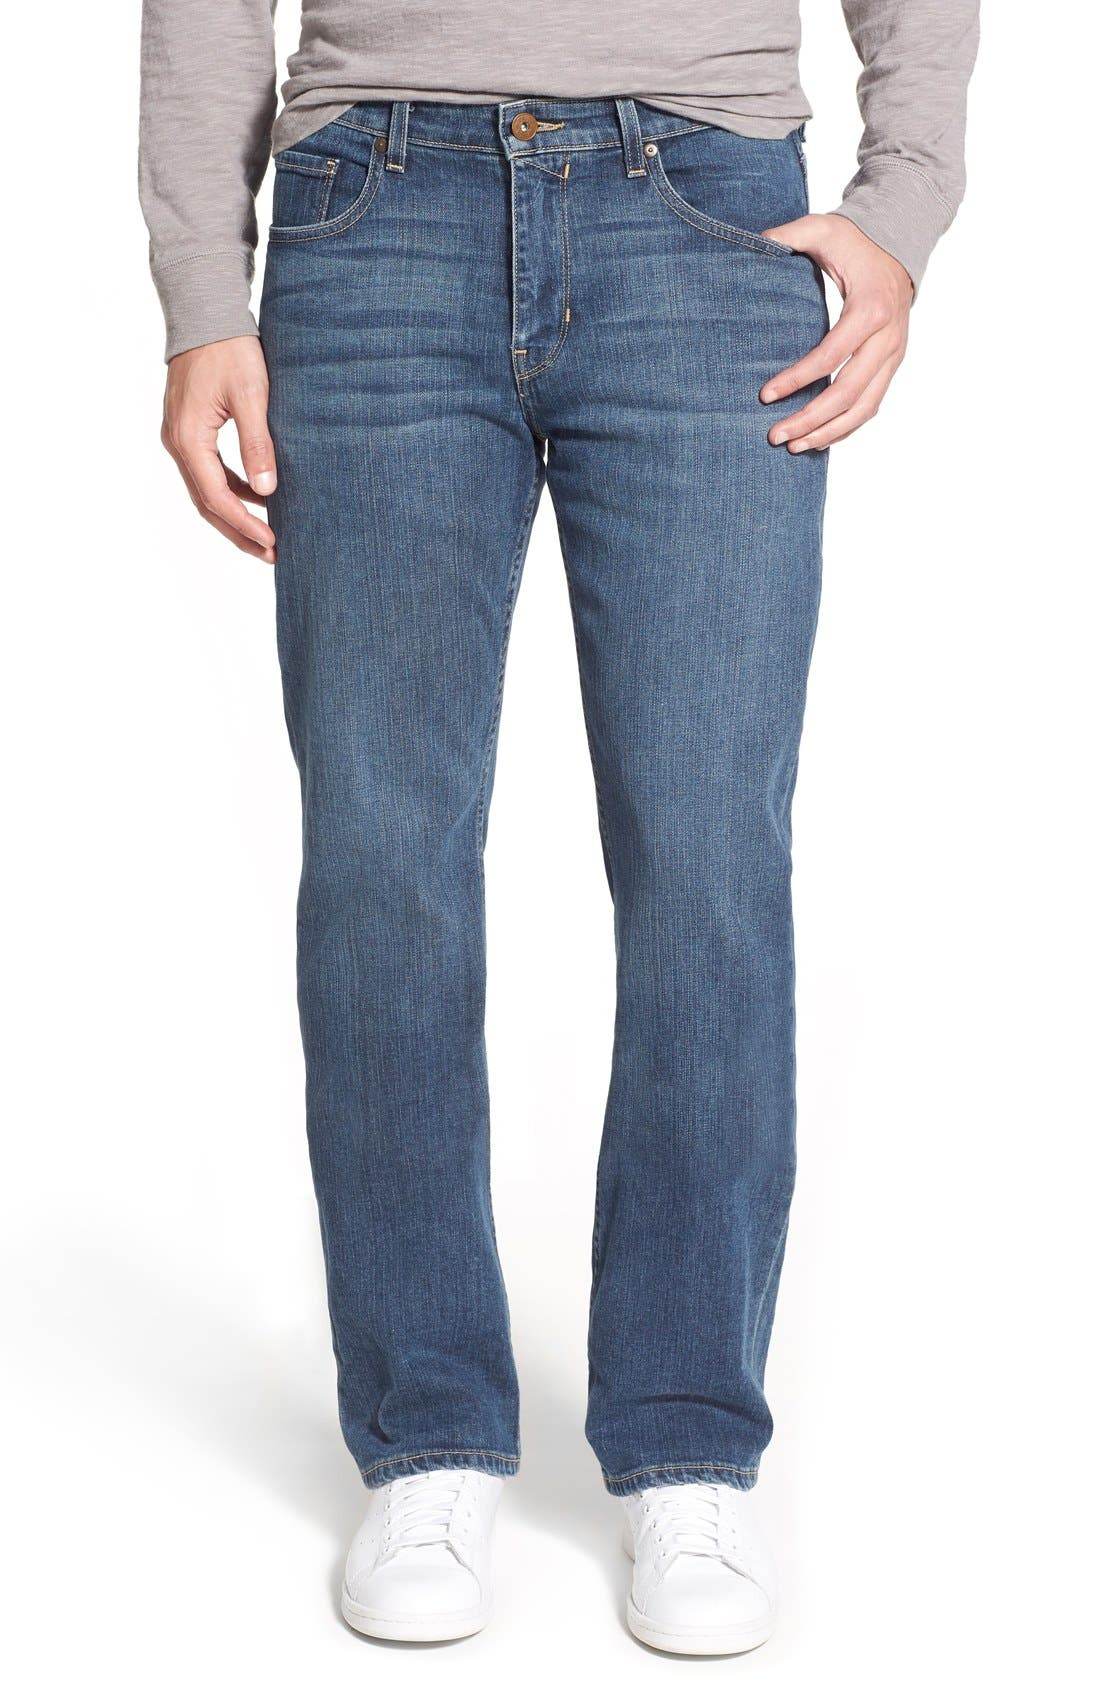 'Doheny' Relaxed Fit Jeans,                             Main thumbnail 1, color,                             400